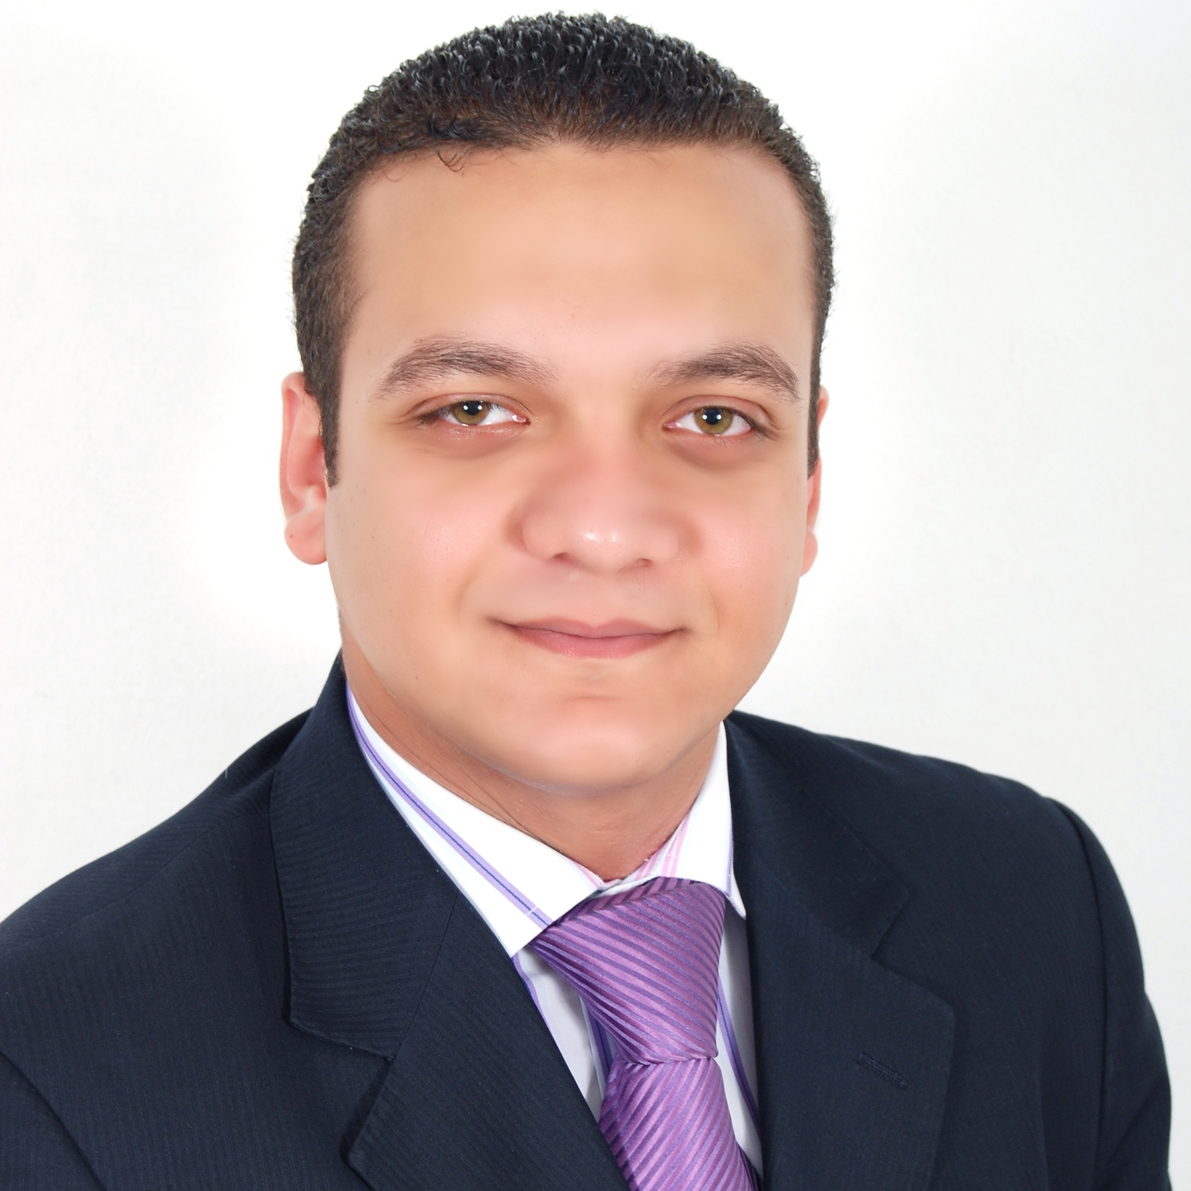 Mohamed Metwaly